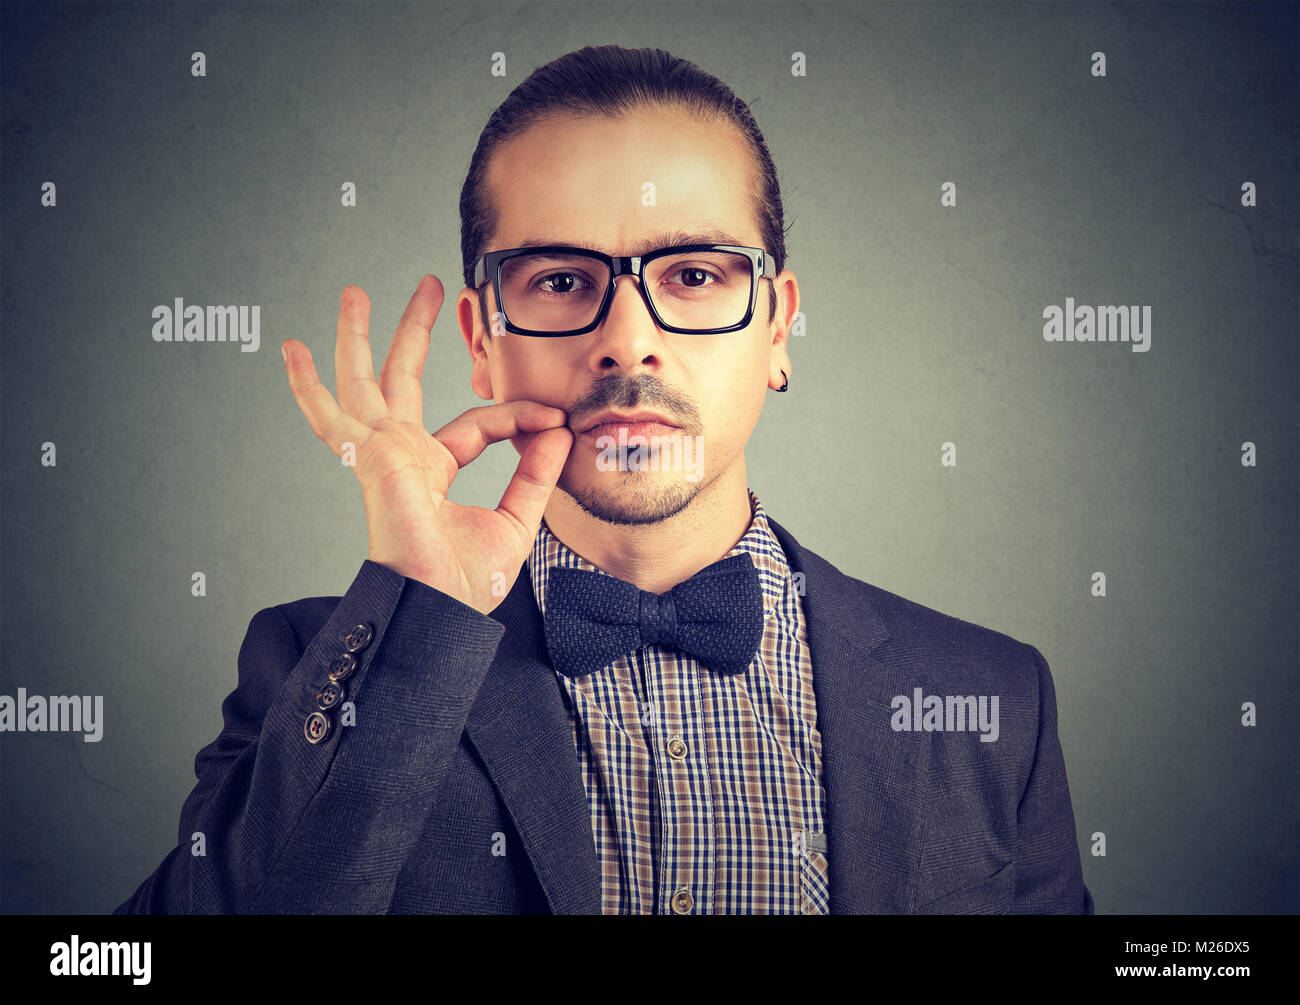 Confident serious man zipping mouth keeping confidential information while looking at camera. - Stock Image